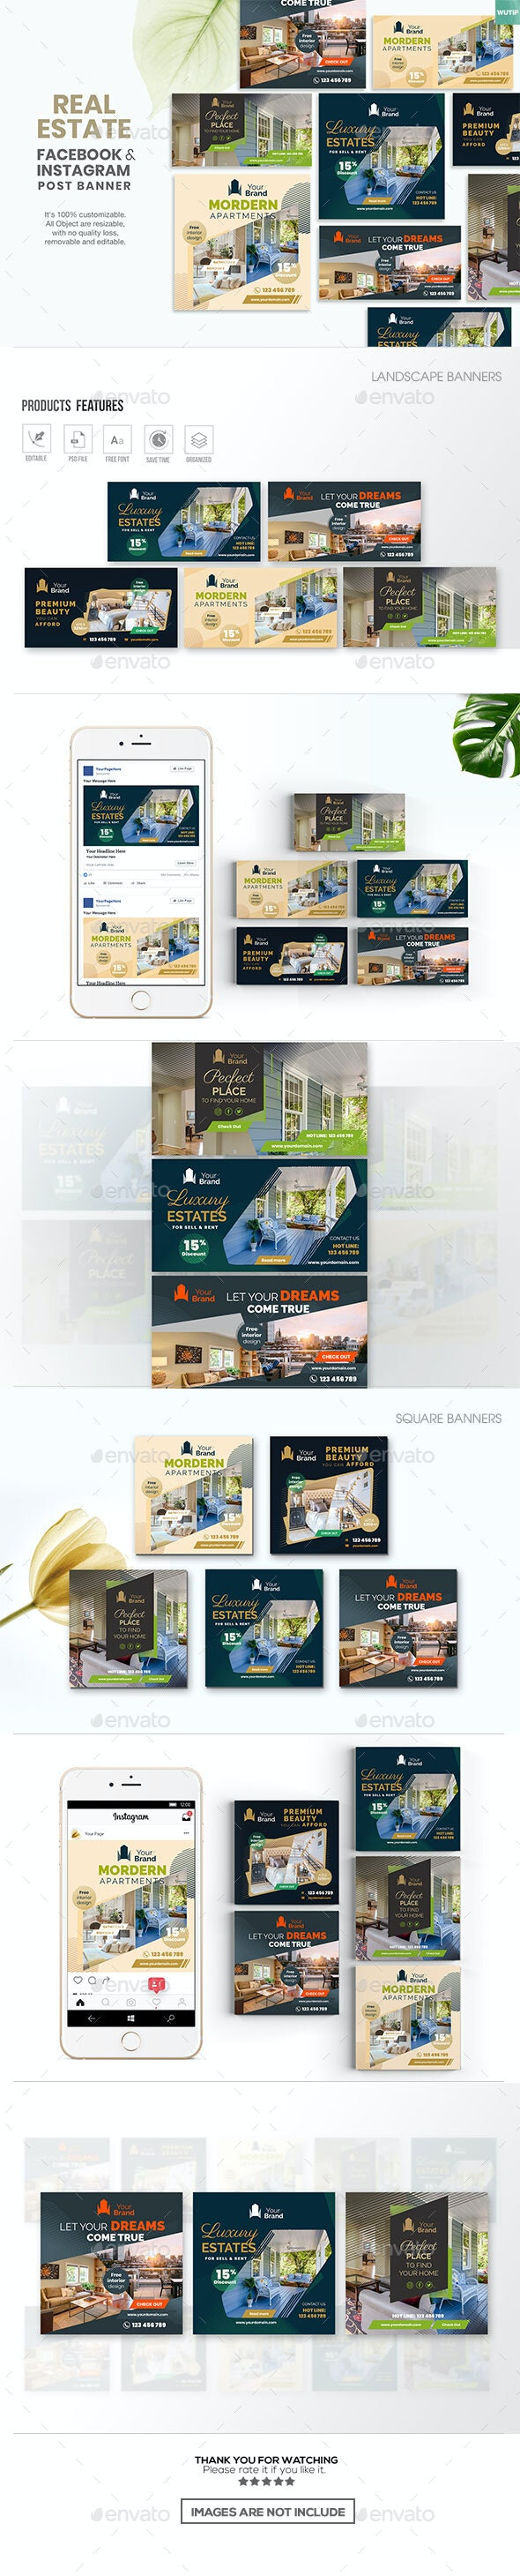 10 Social Media Banners-Real Estate - Miscellaneous Social Media